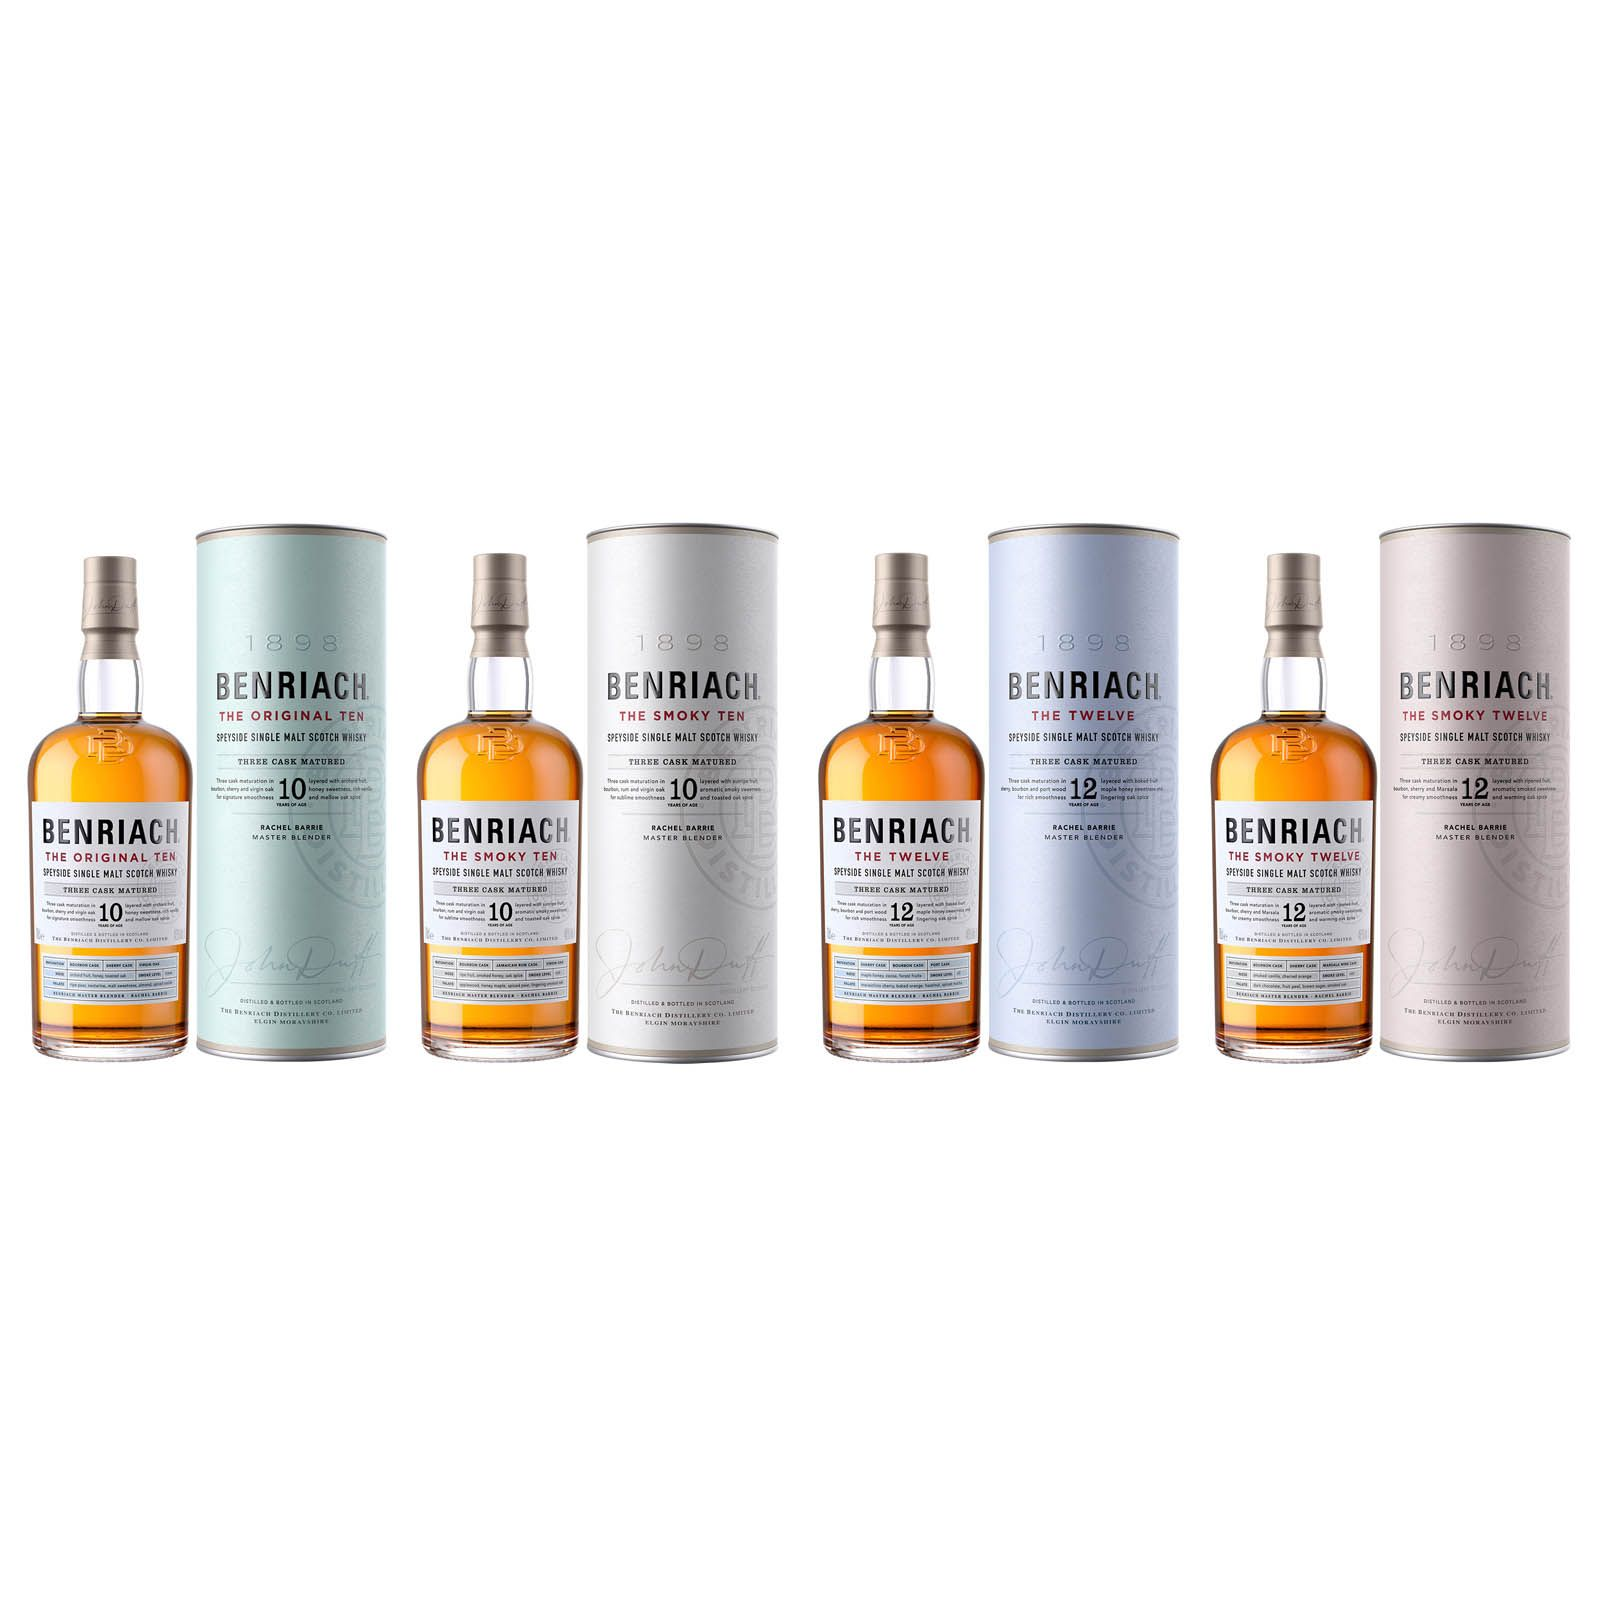 Benriach's new core range of whiskies